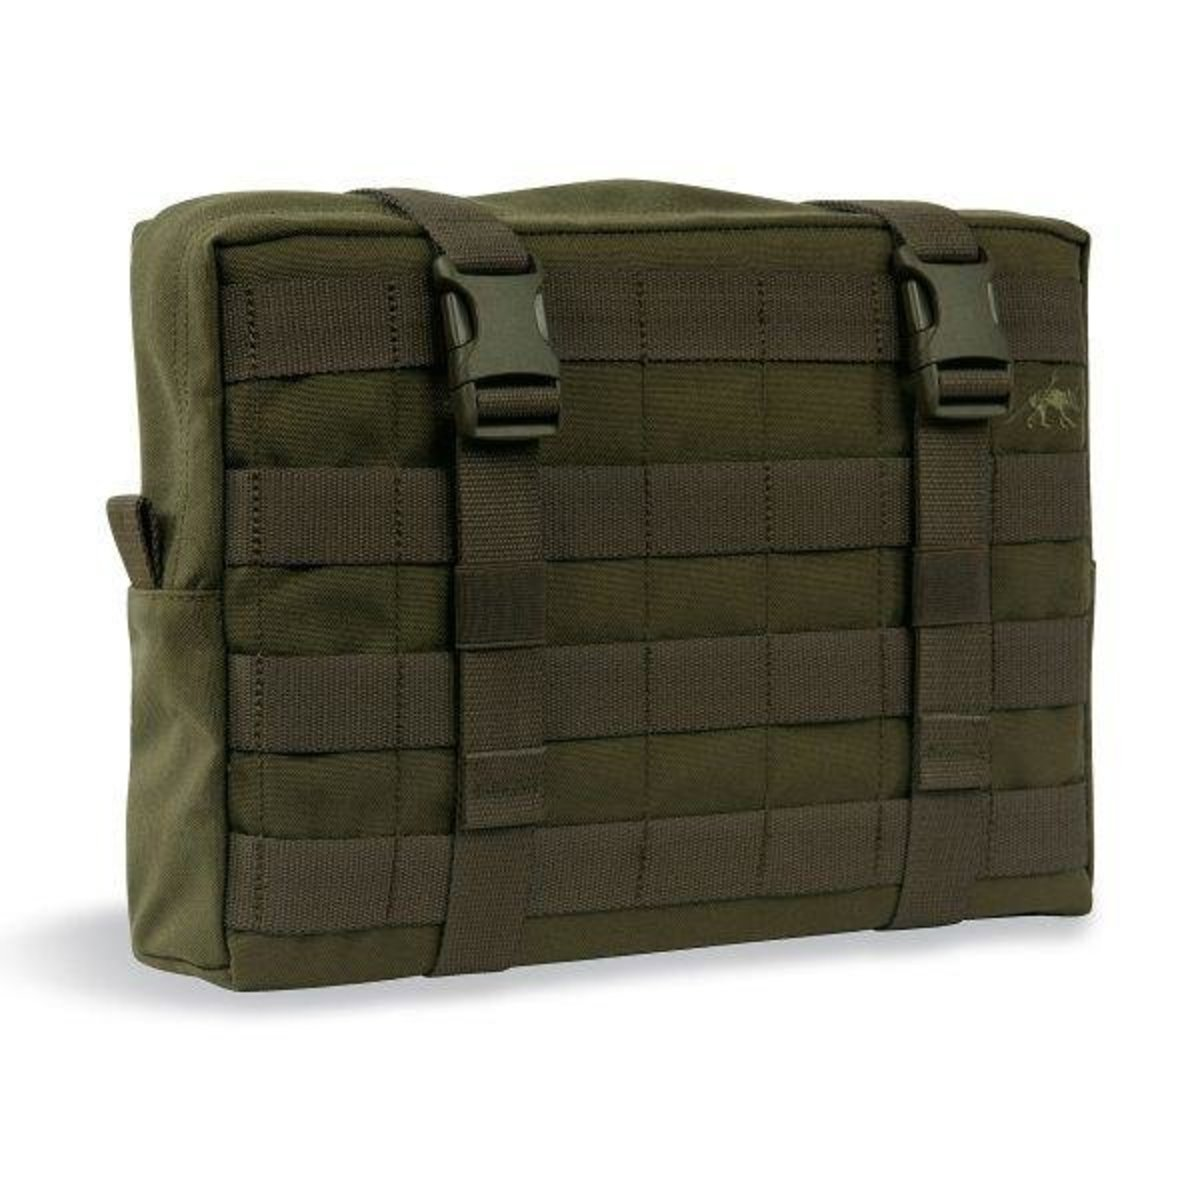 TT Tac Pouch 10 Olive